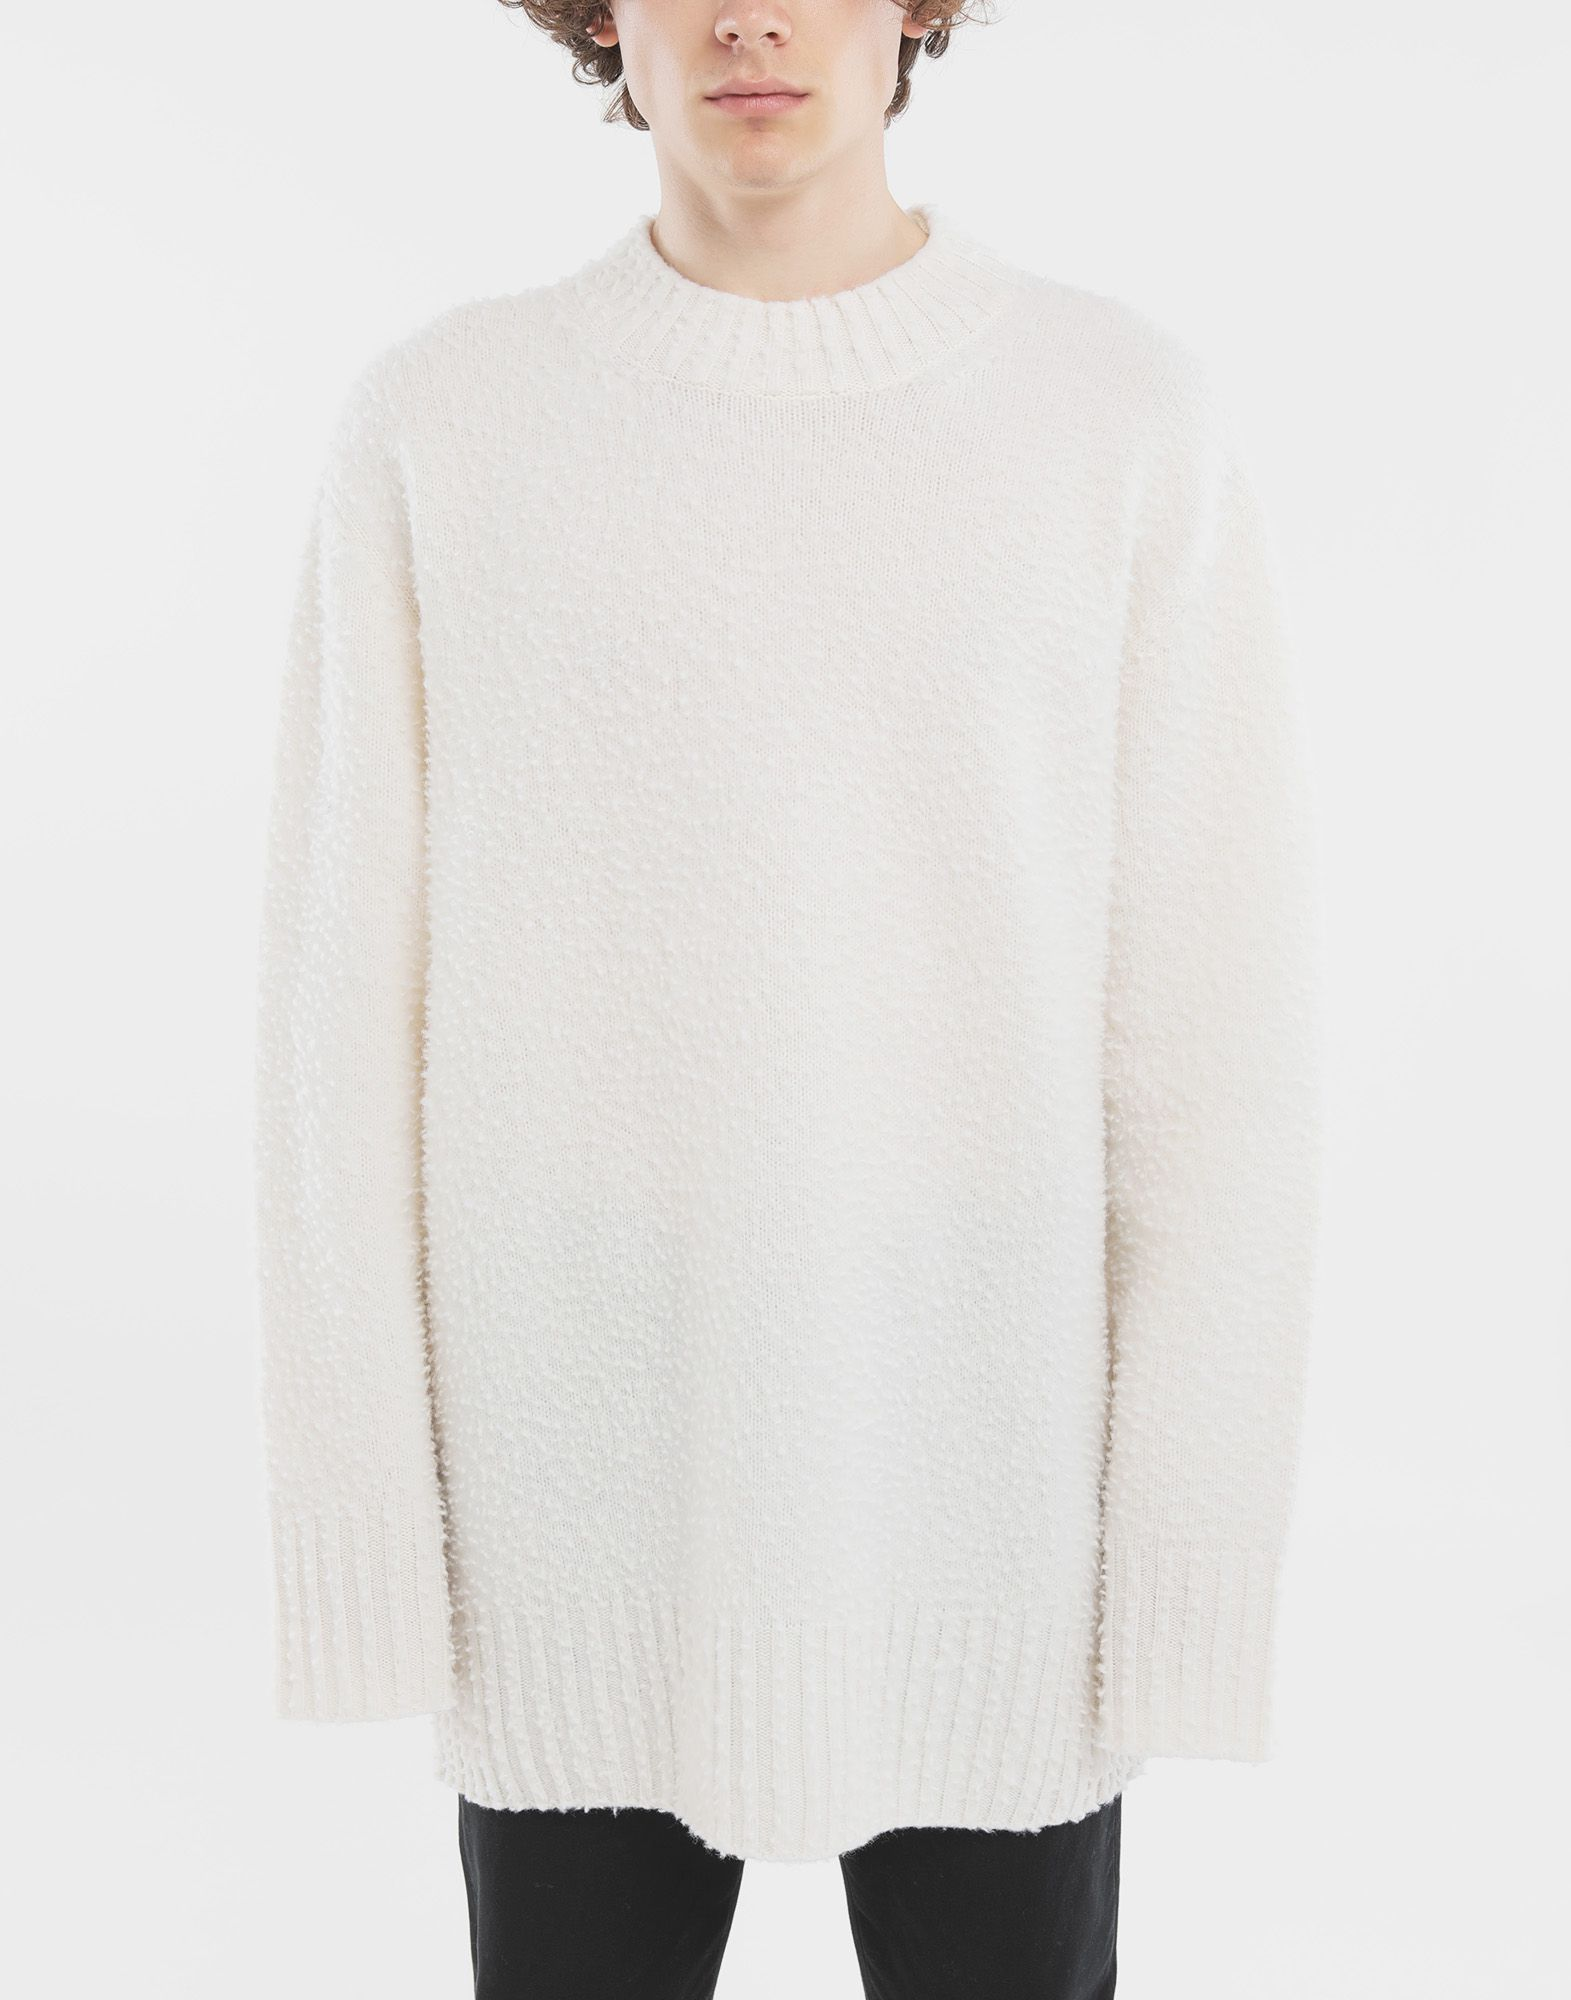 MAISON MARGIELA Oversized wool sweater Crewneck Man r